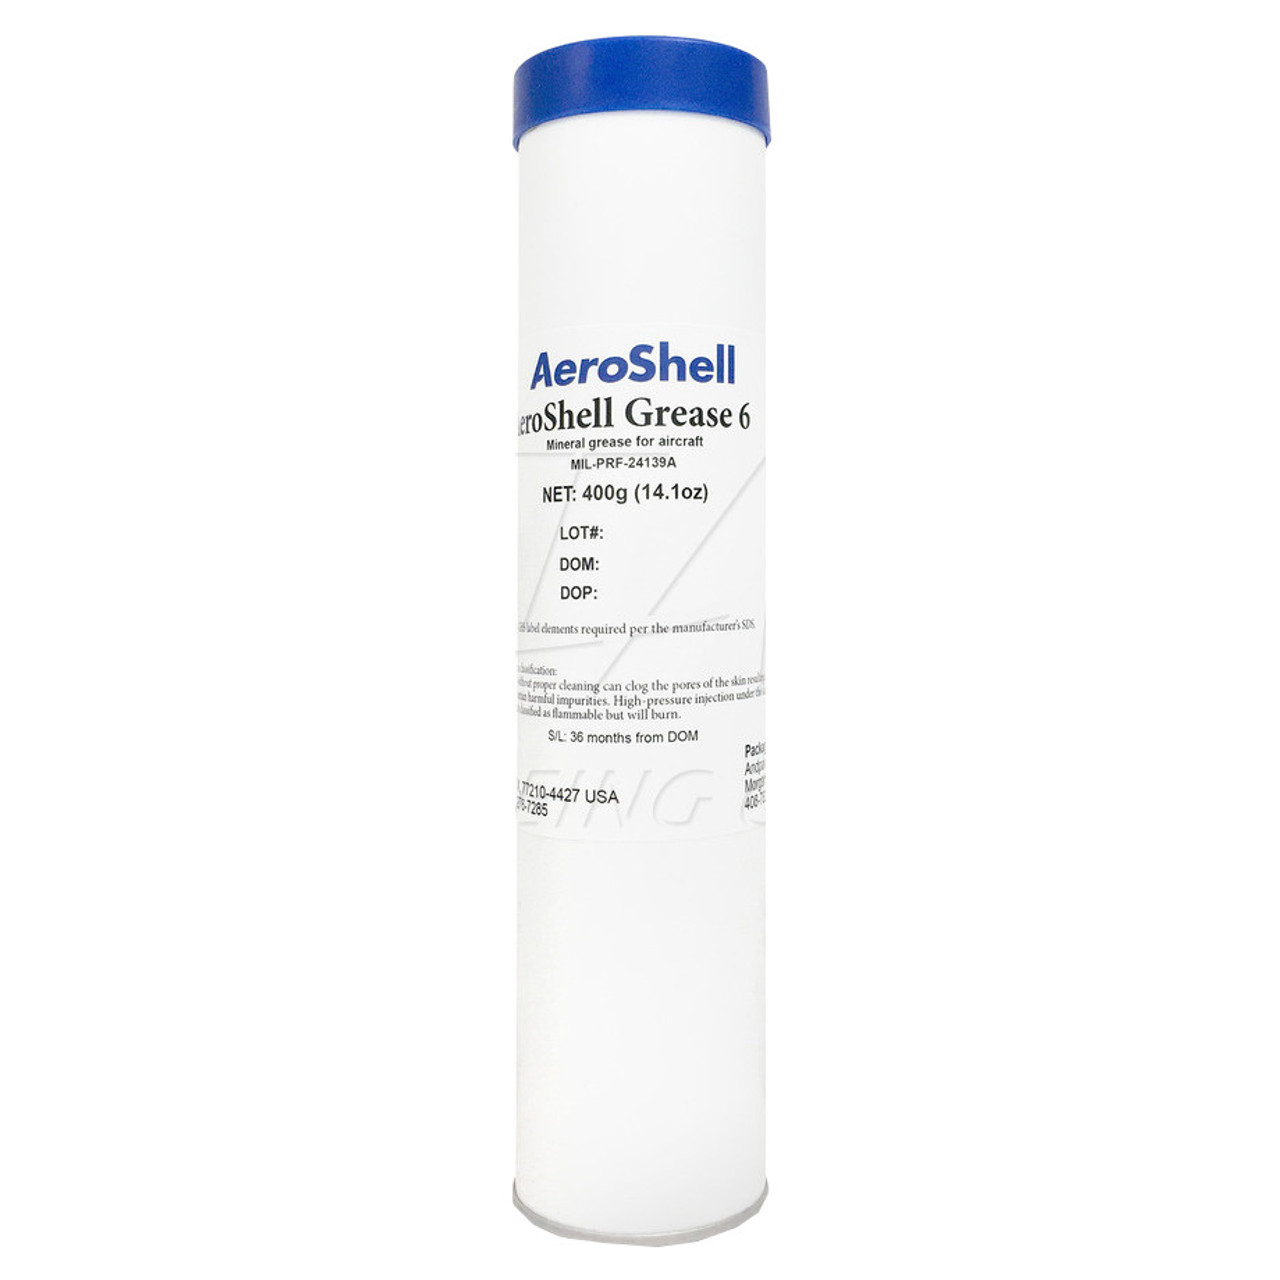 Aeroshell Grease 6 - General Purpose Airframe Grease - 14oz